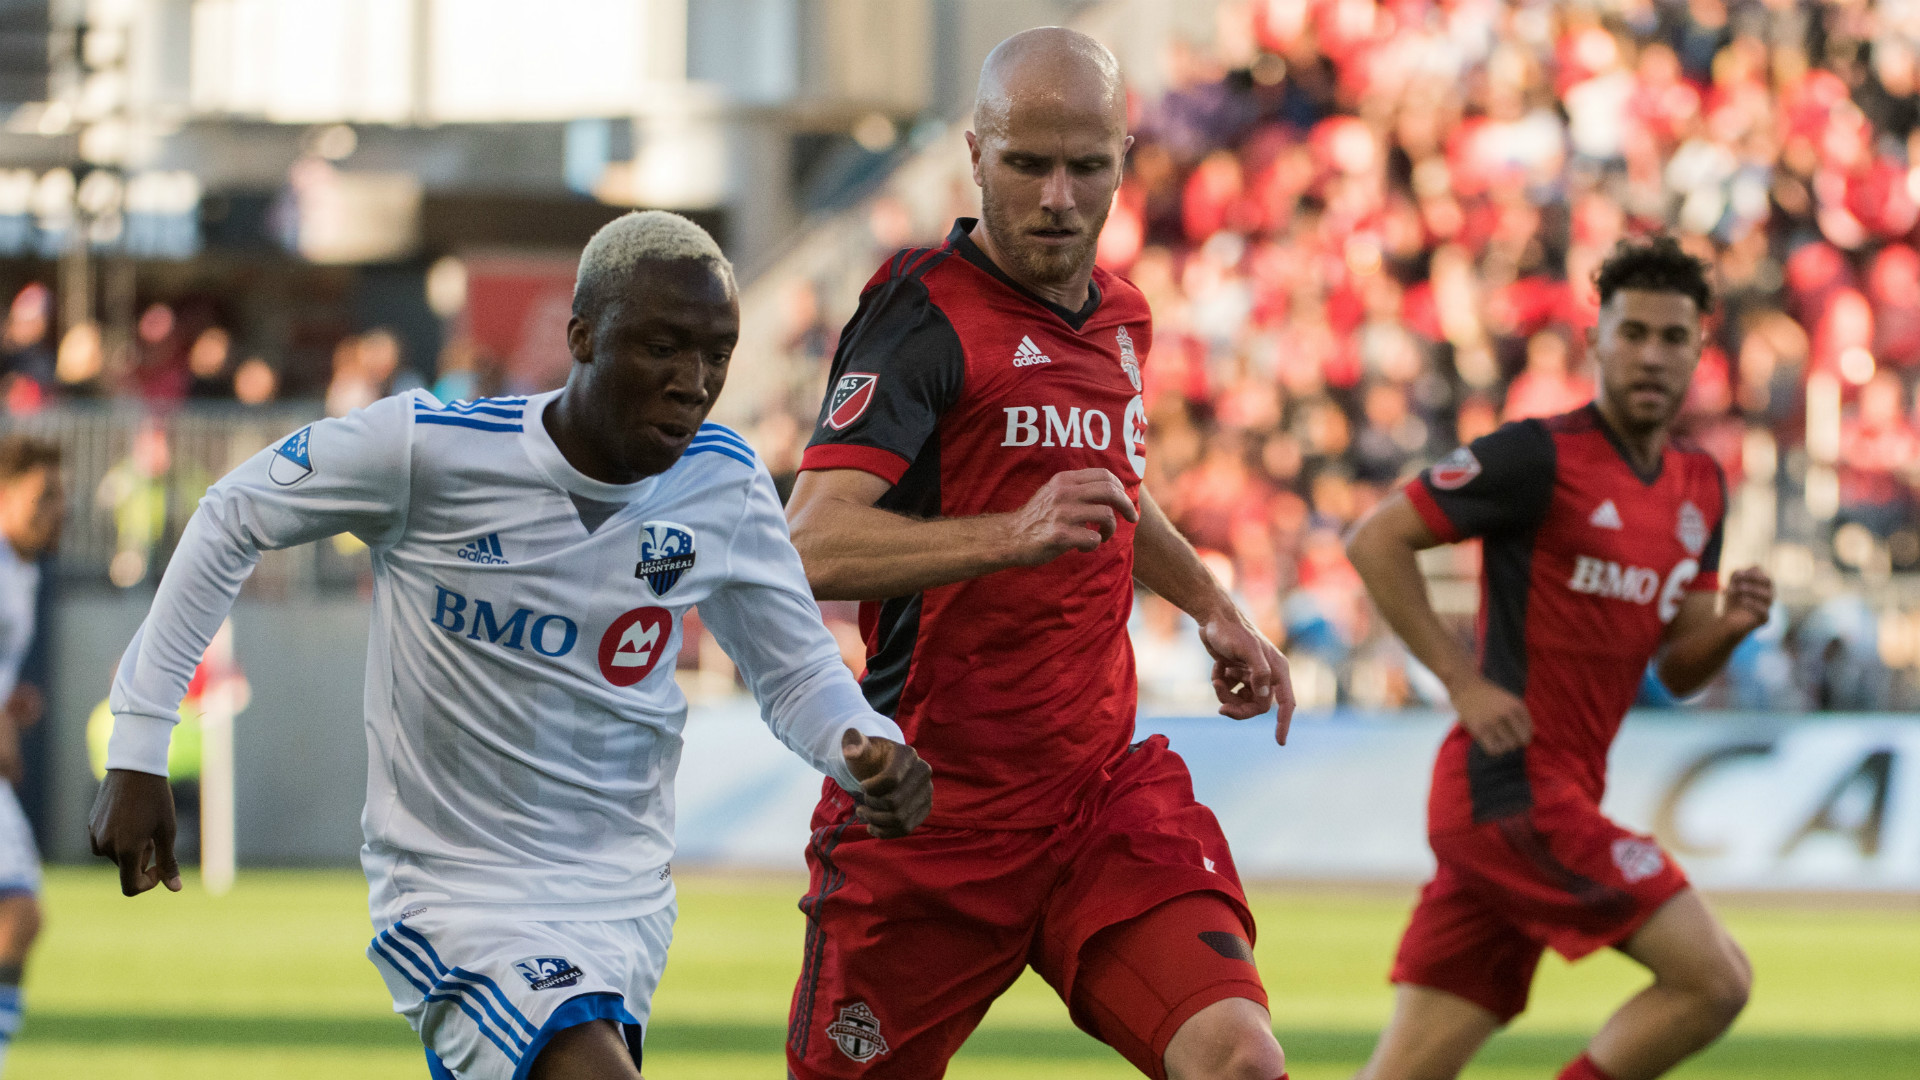 Giovinco scores twice, Toronto extends unbeaten streak to 9